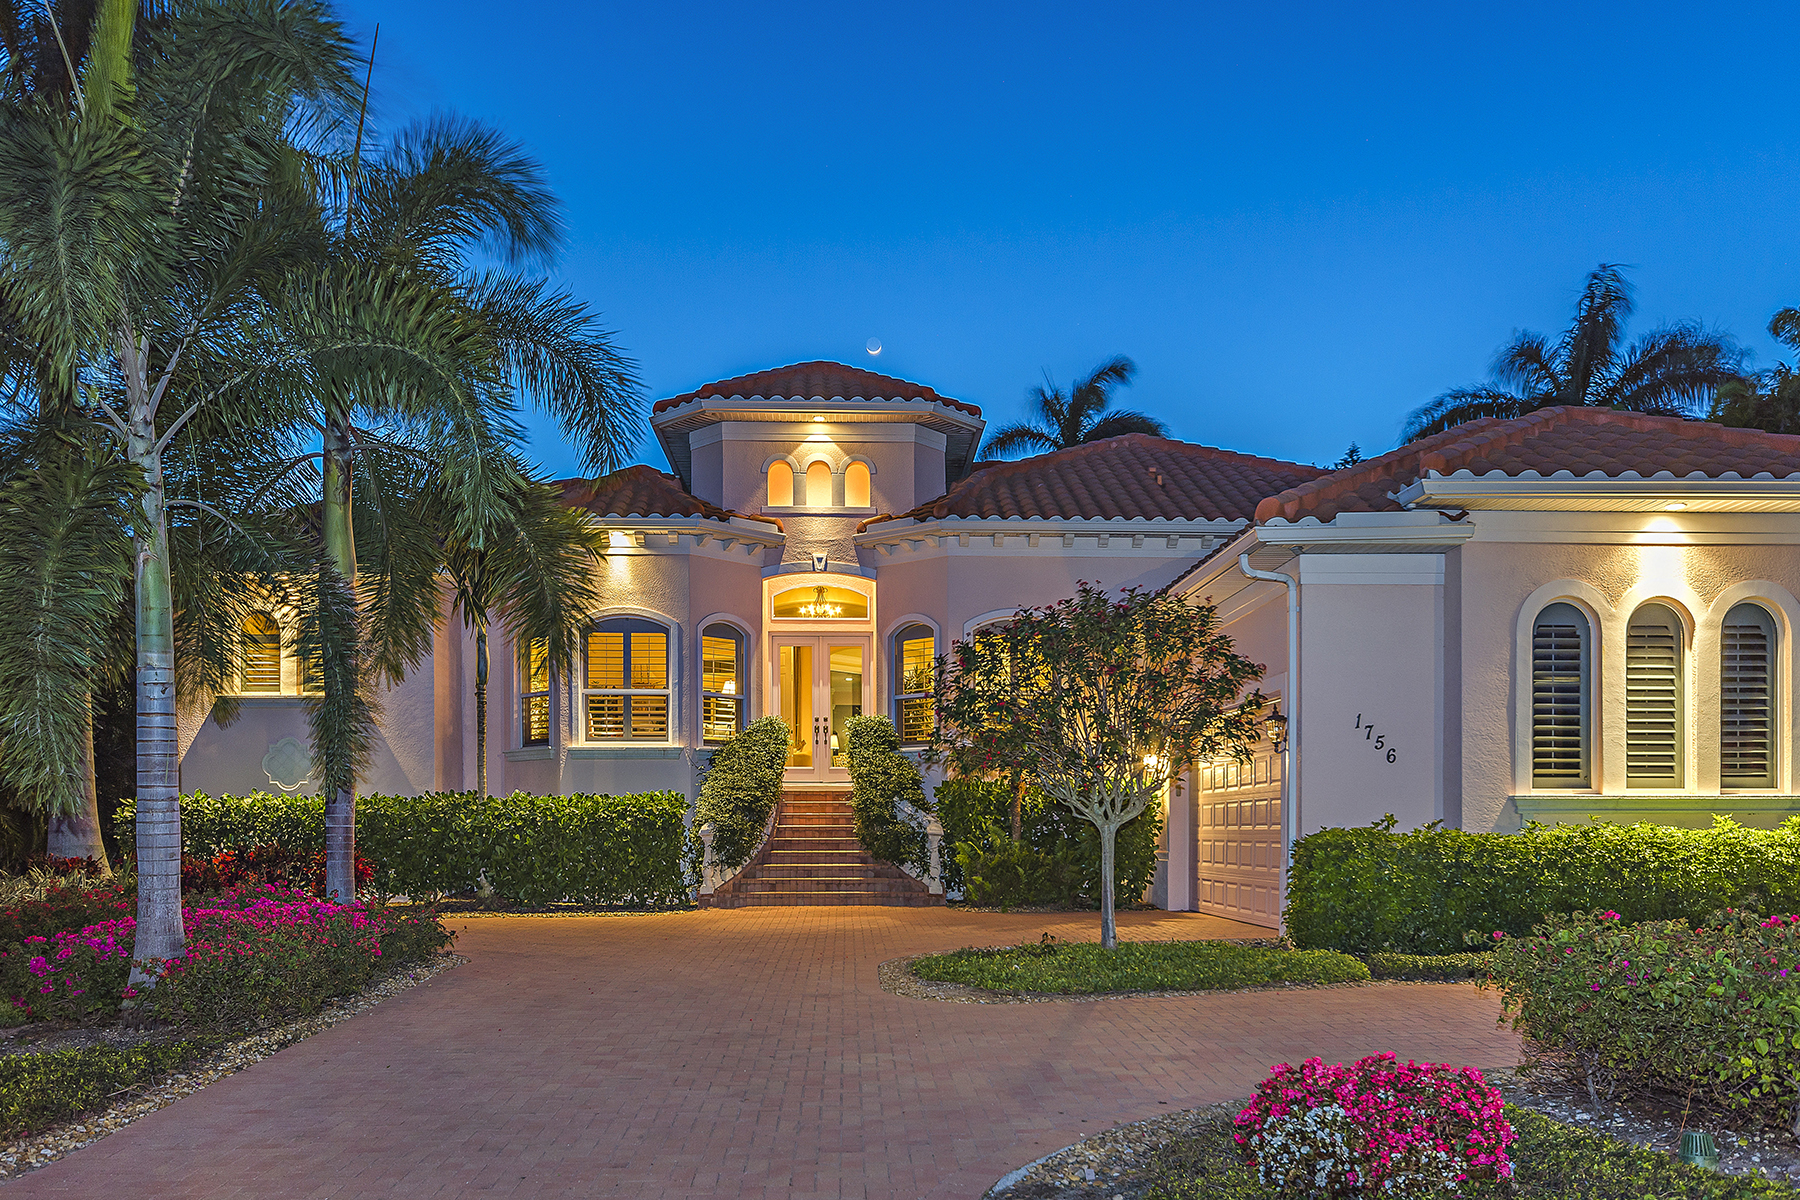 Single Family Home for Sale at AQUALANE SHORES 1756 3rd St S Aqualane Shores, Naples, Florida, 34102 United States